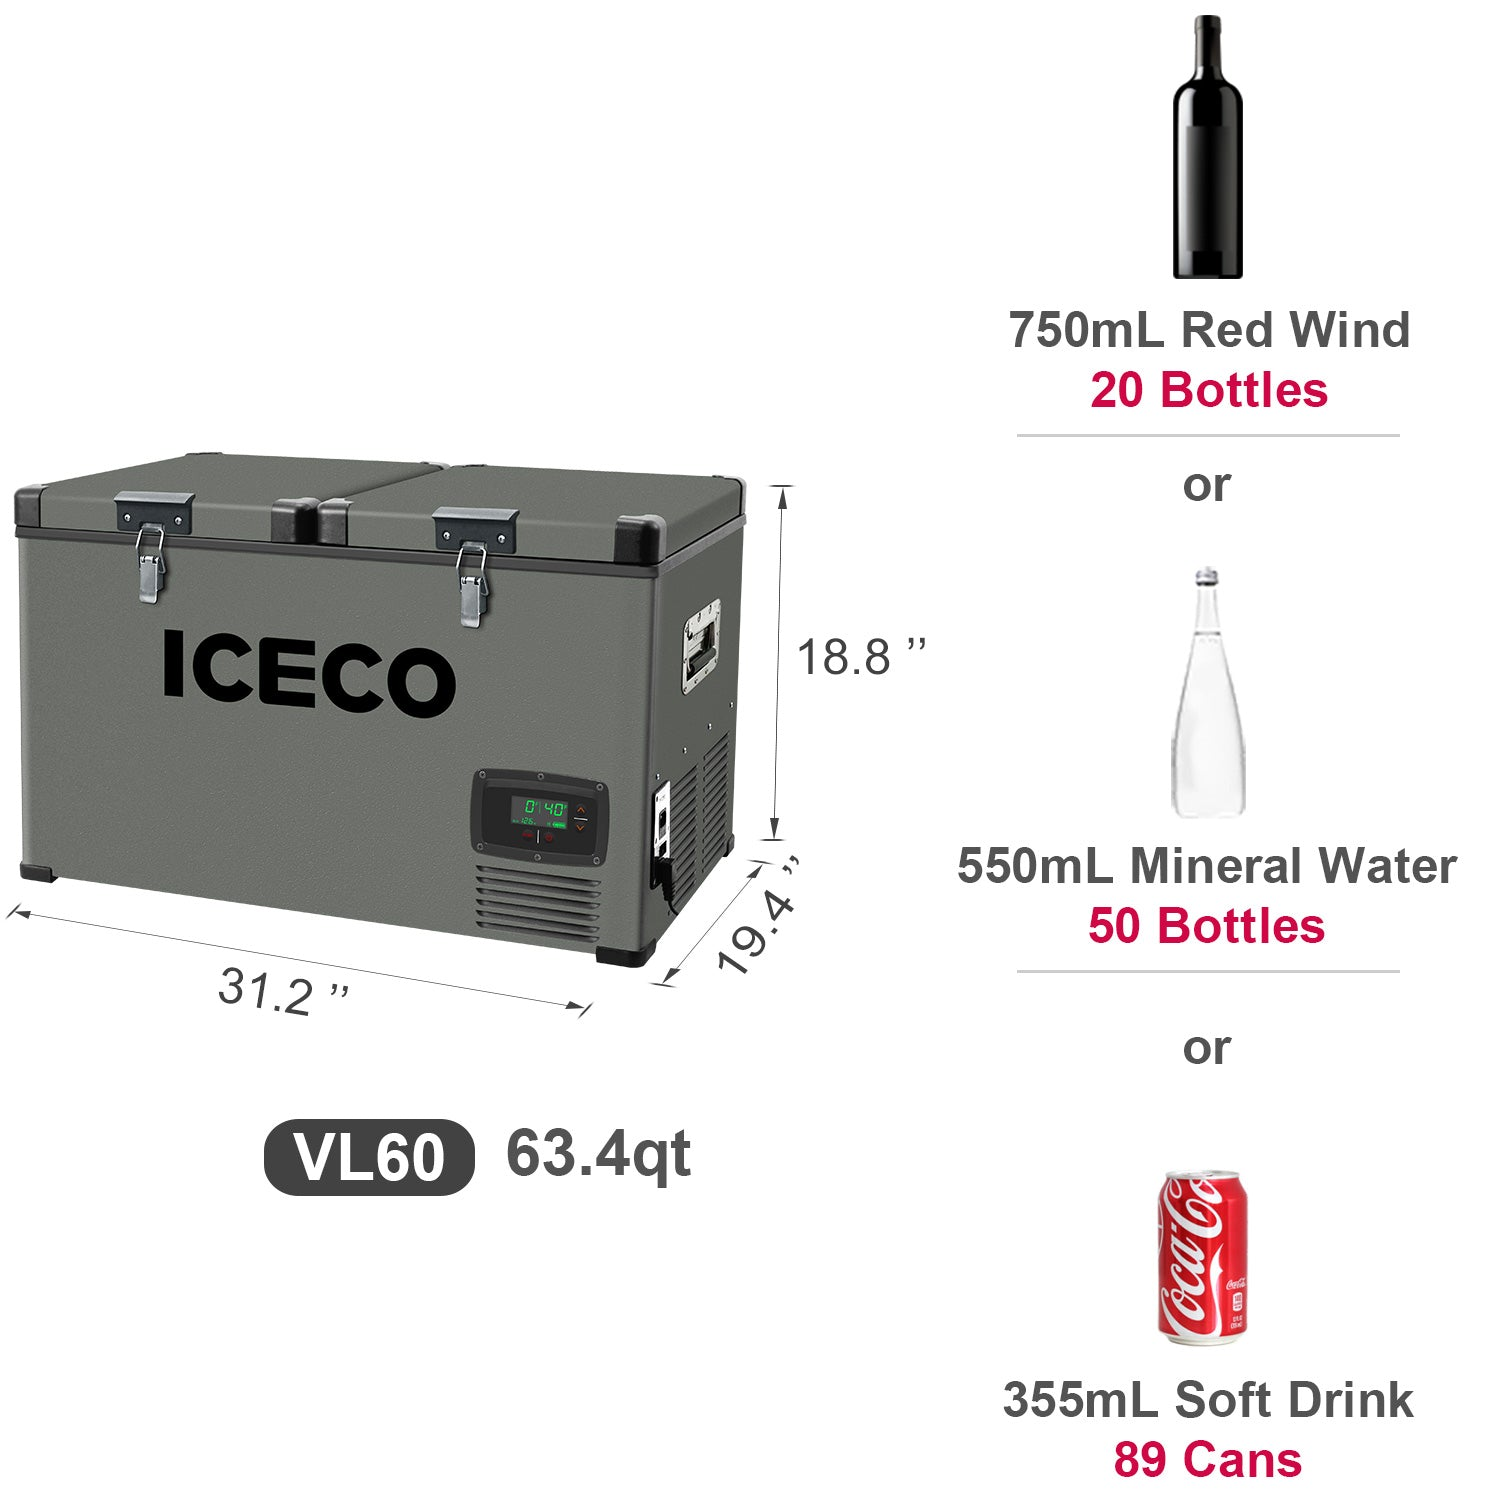 ICECO 15 Gallon Heavy Duty Portable Refrigerator VL60